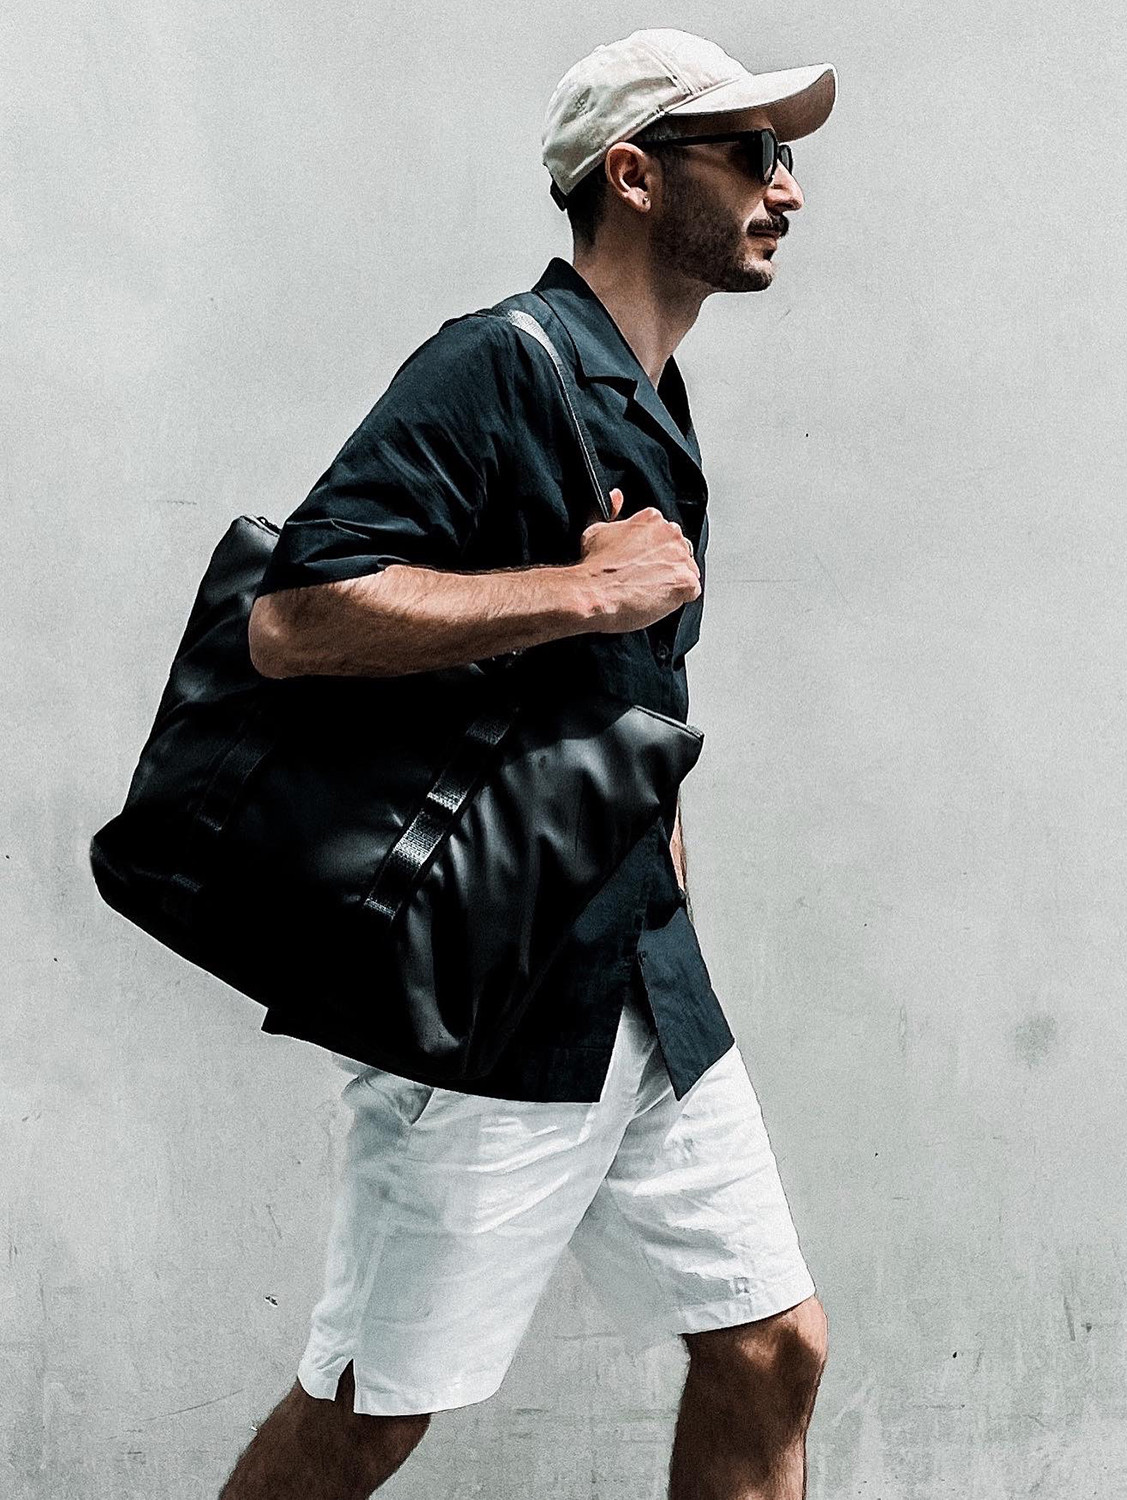 Men's outfit idea for 2021 with black short-sleeved plain shirt, white cotton shorts, black sandals. Suitable for summer.